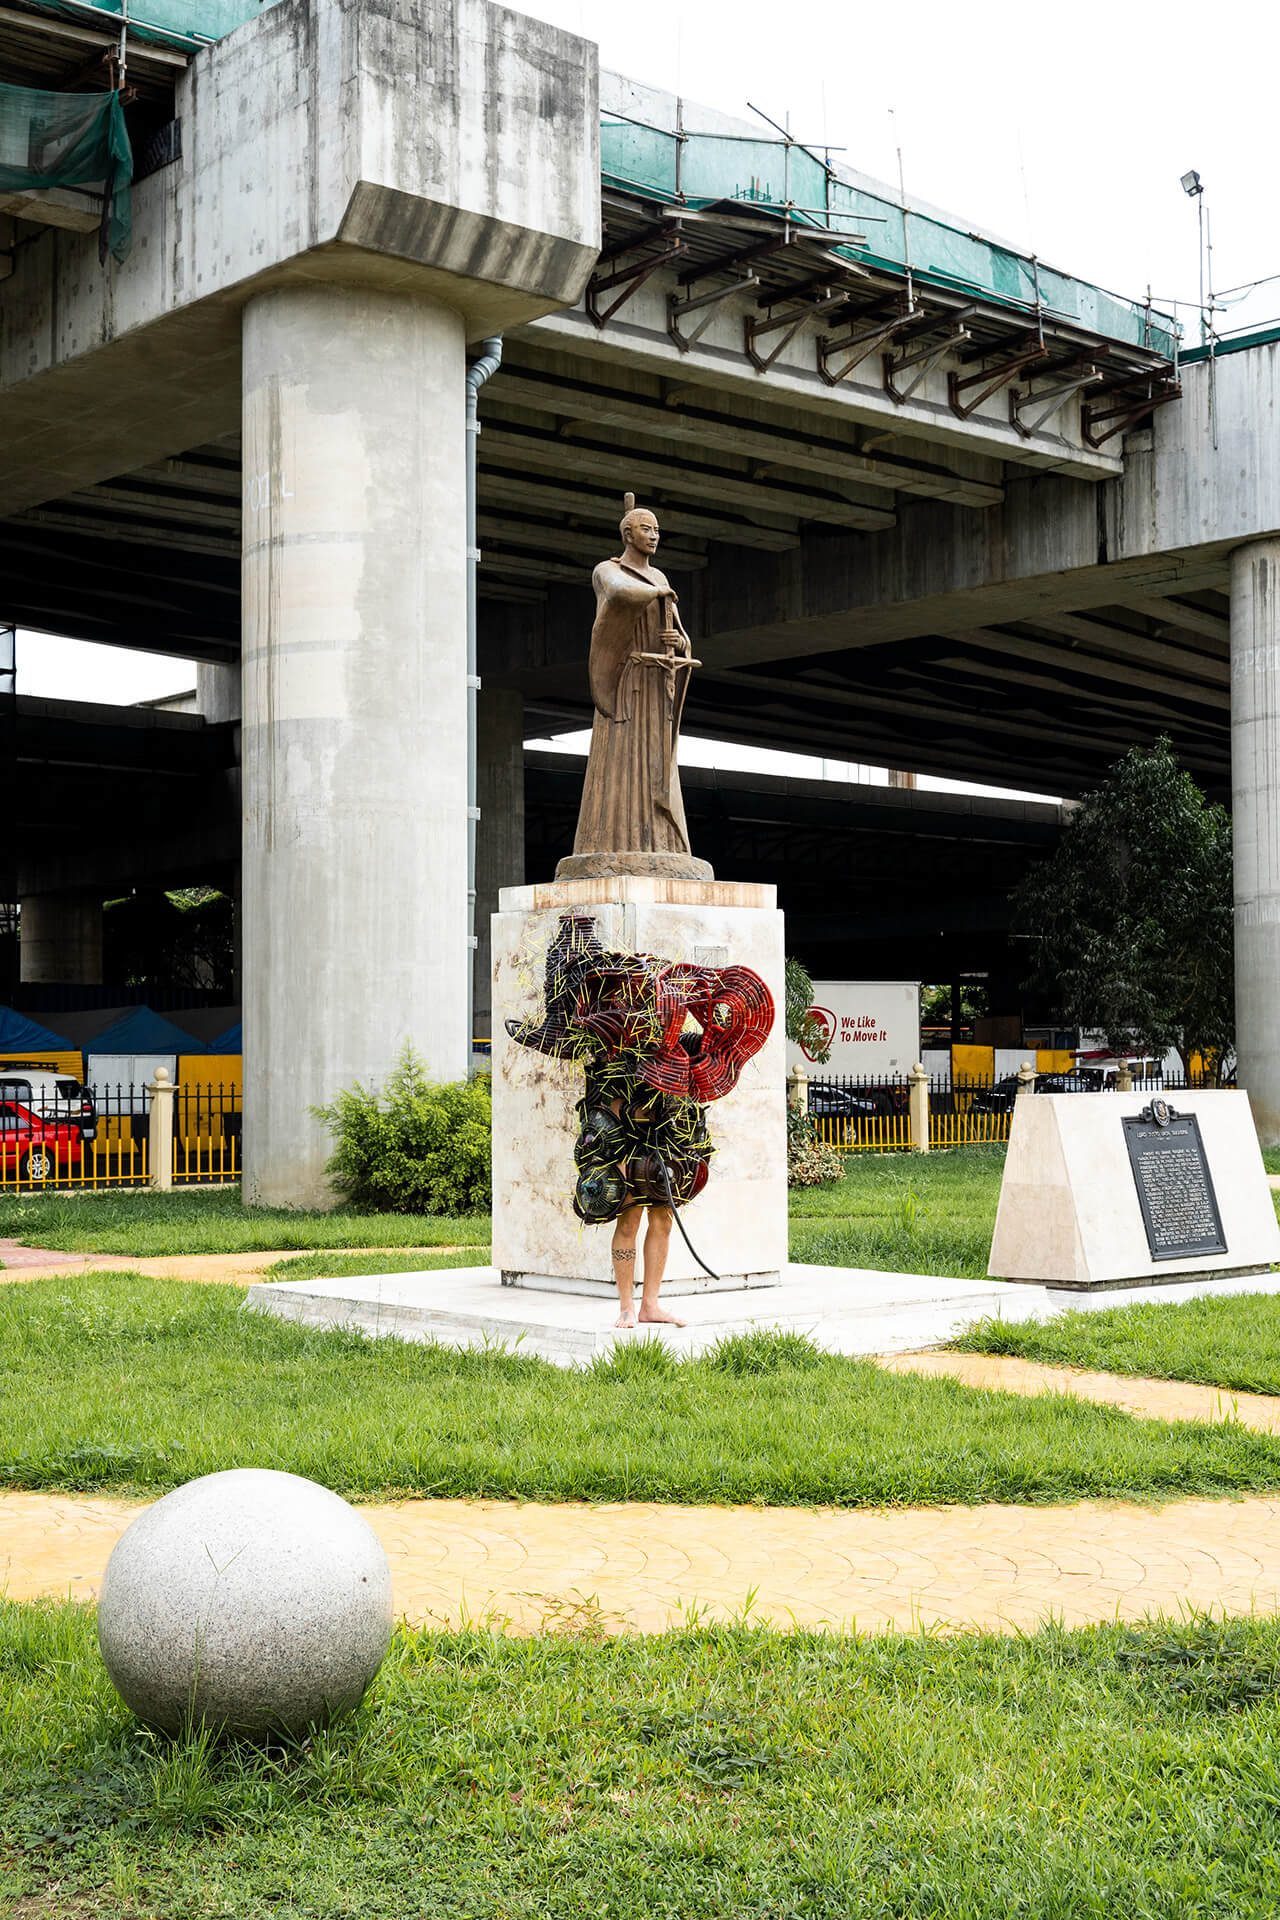 Art Installations in public spaces - By the monument under the LRT (Aliens of Manila series)